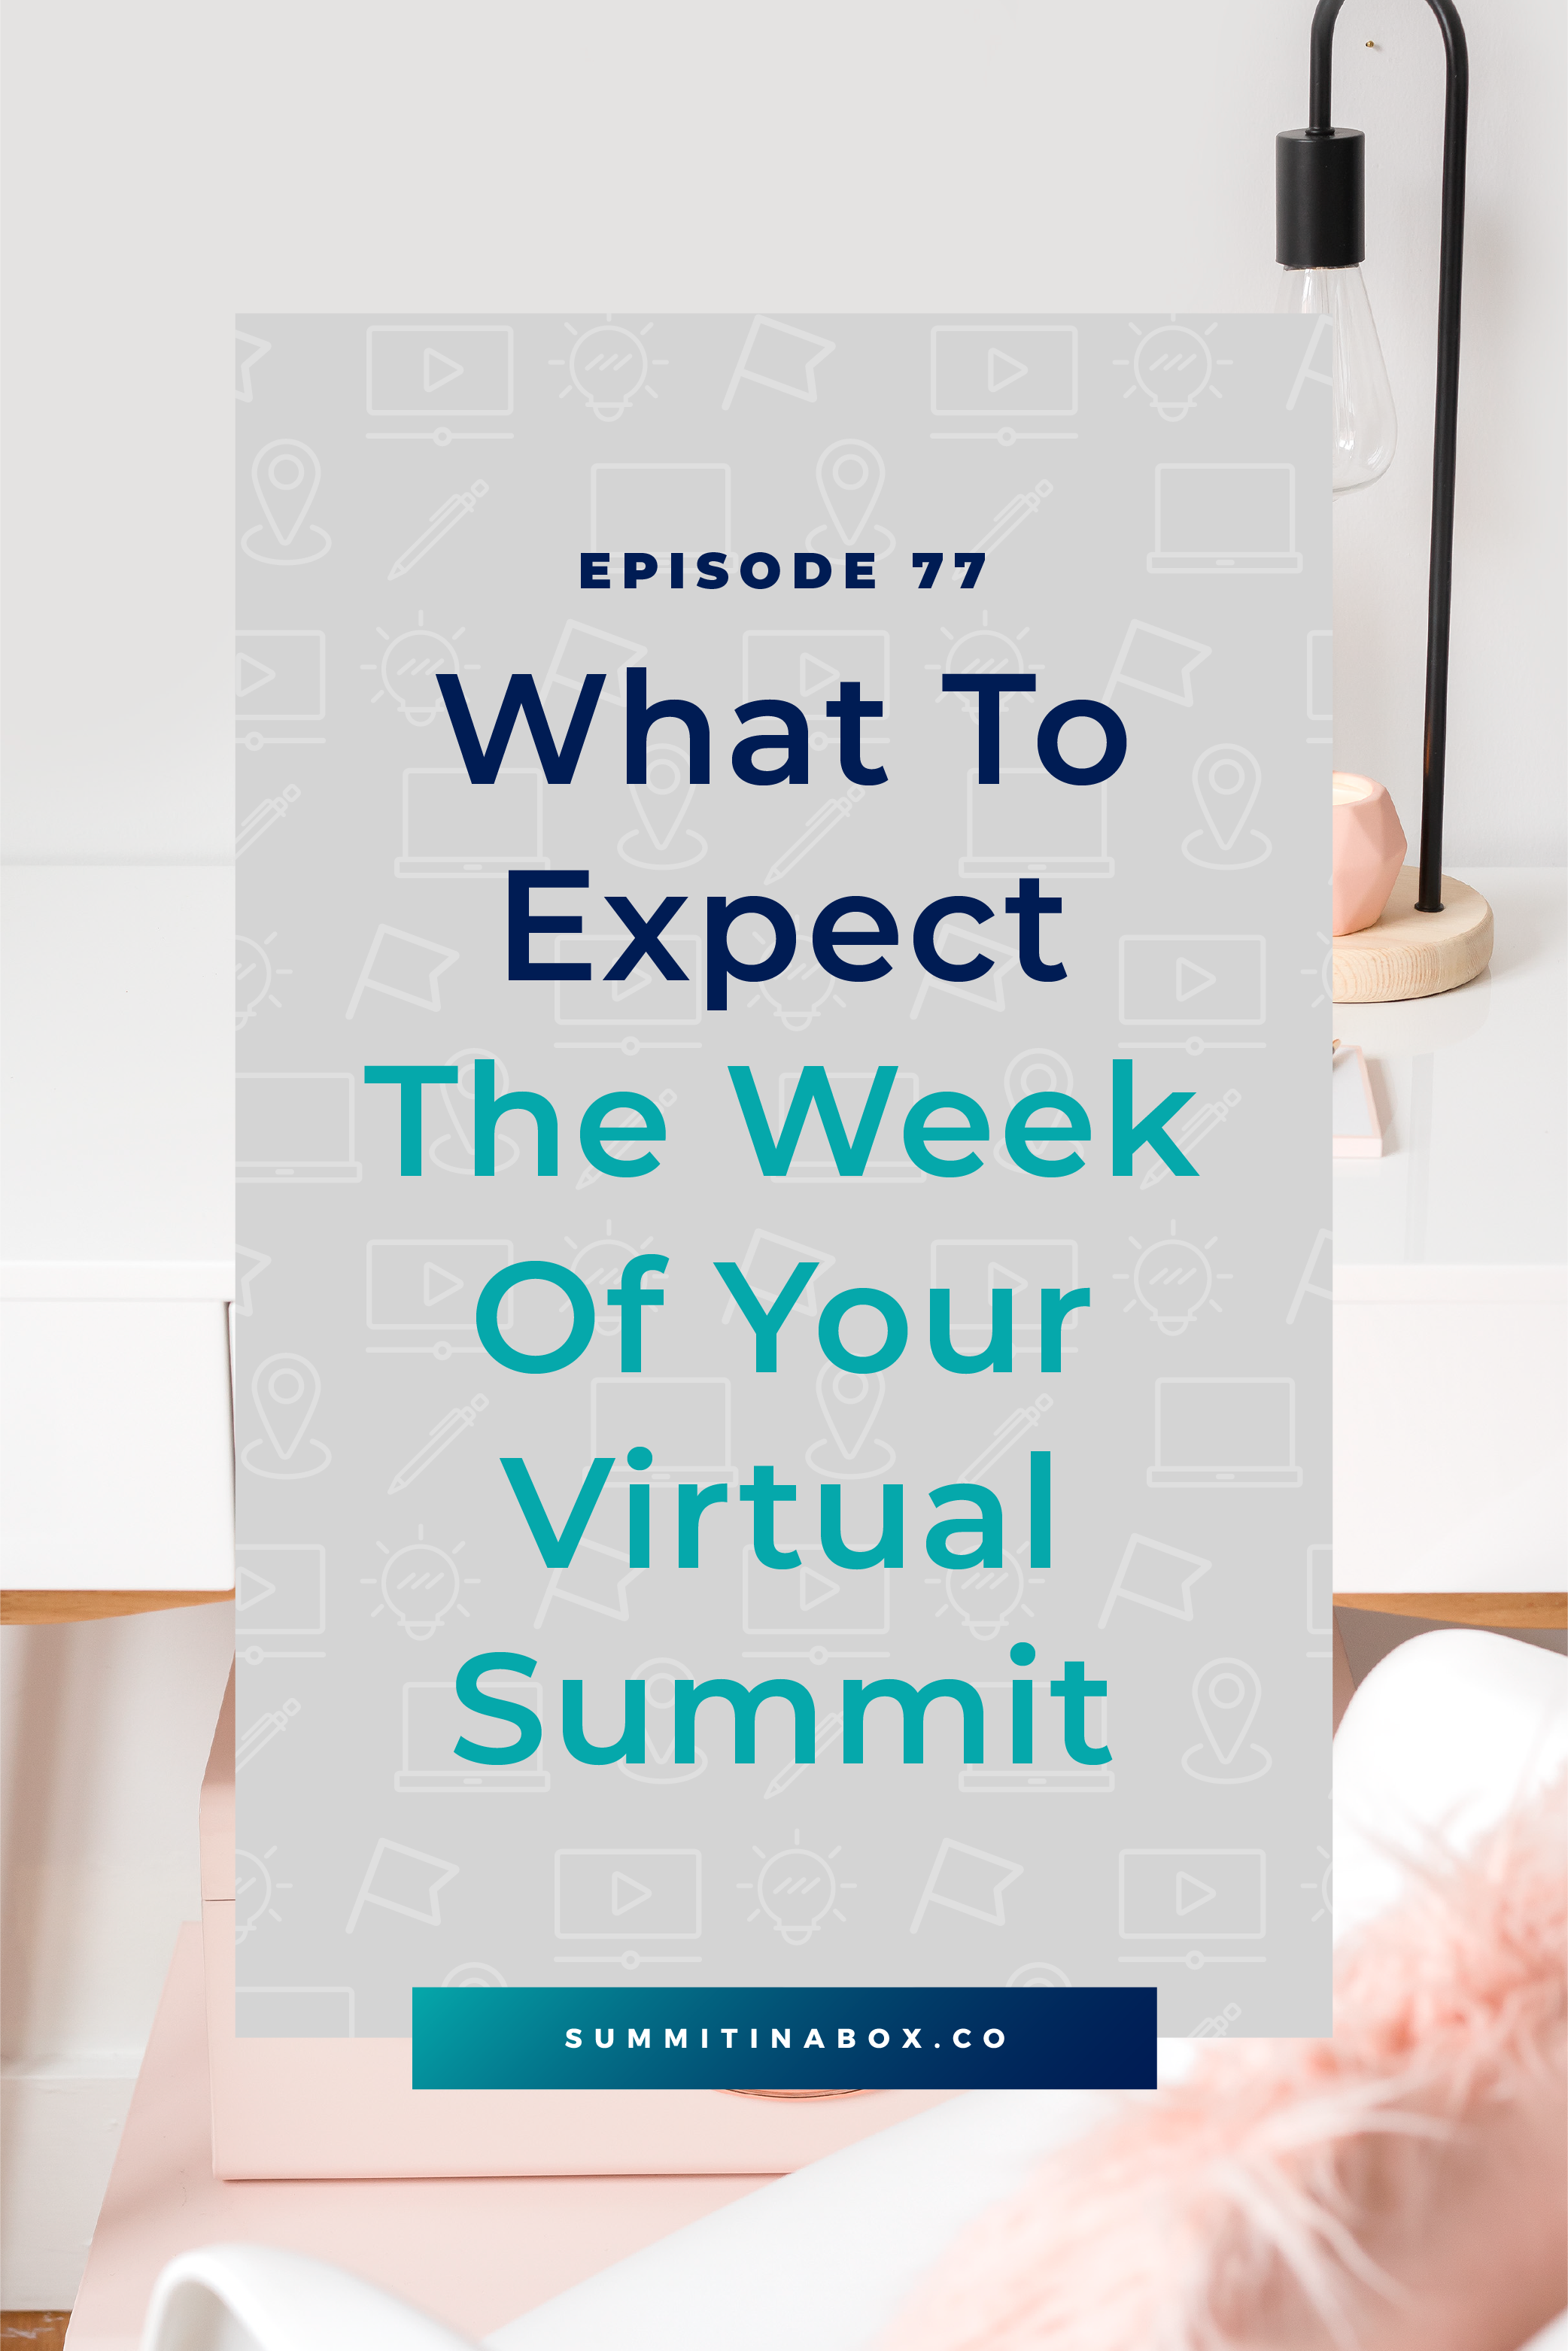 The week of your virtual summit can leave you scattered and wondering what to focus on at any given time. Let's cover what to expect during your virtual event!